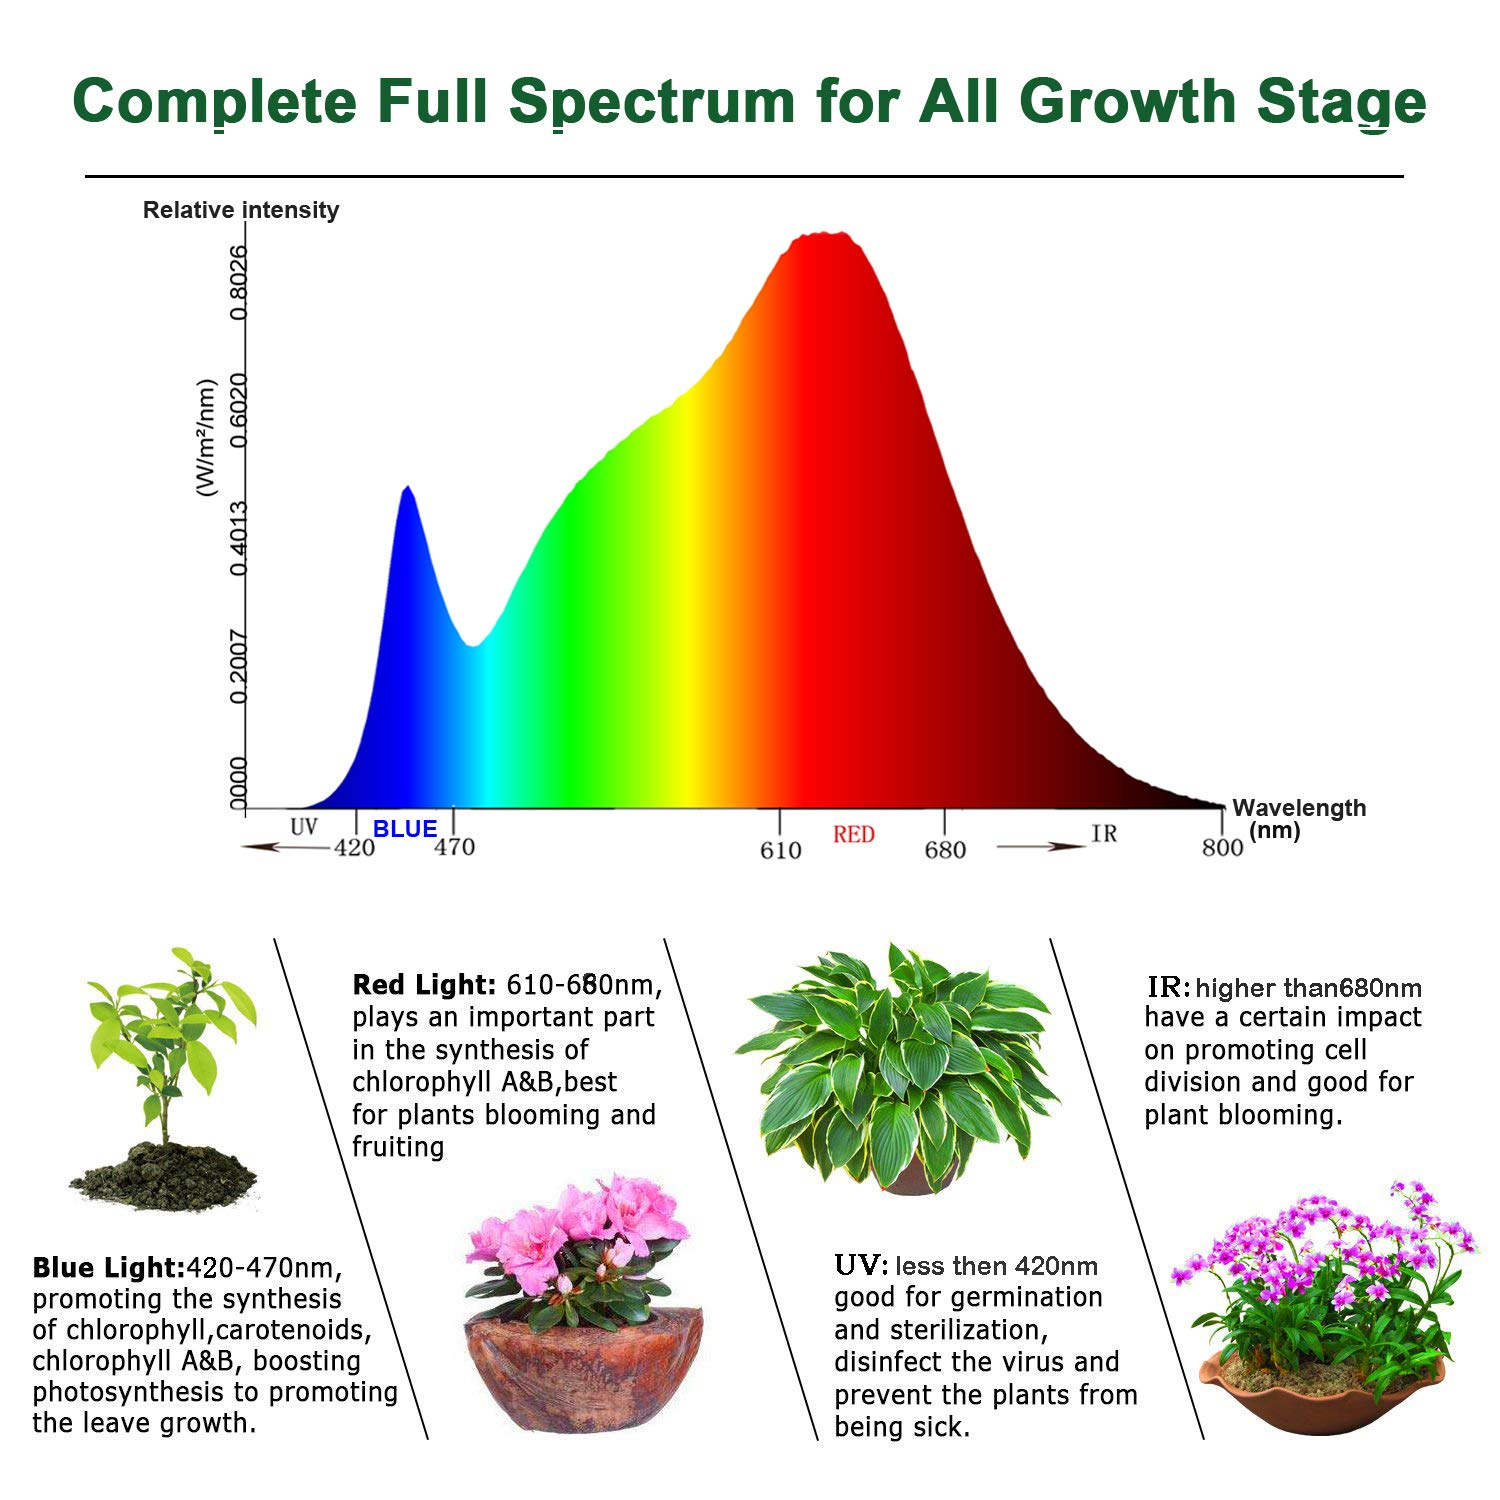 YGROW LED Grow Light Full Spectrum 600W,Reflector-Series Plant Grow Lights for Indoor Plants Veg and Flower with Heatproof Casing 3500K by YGROW (Image #2)